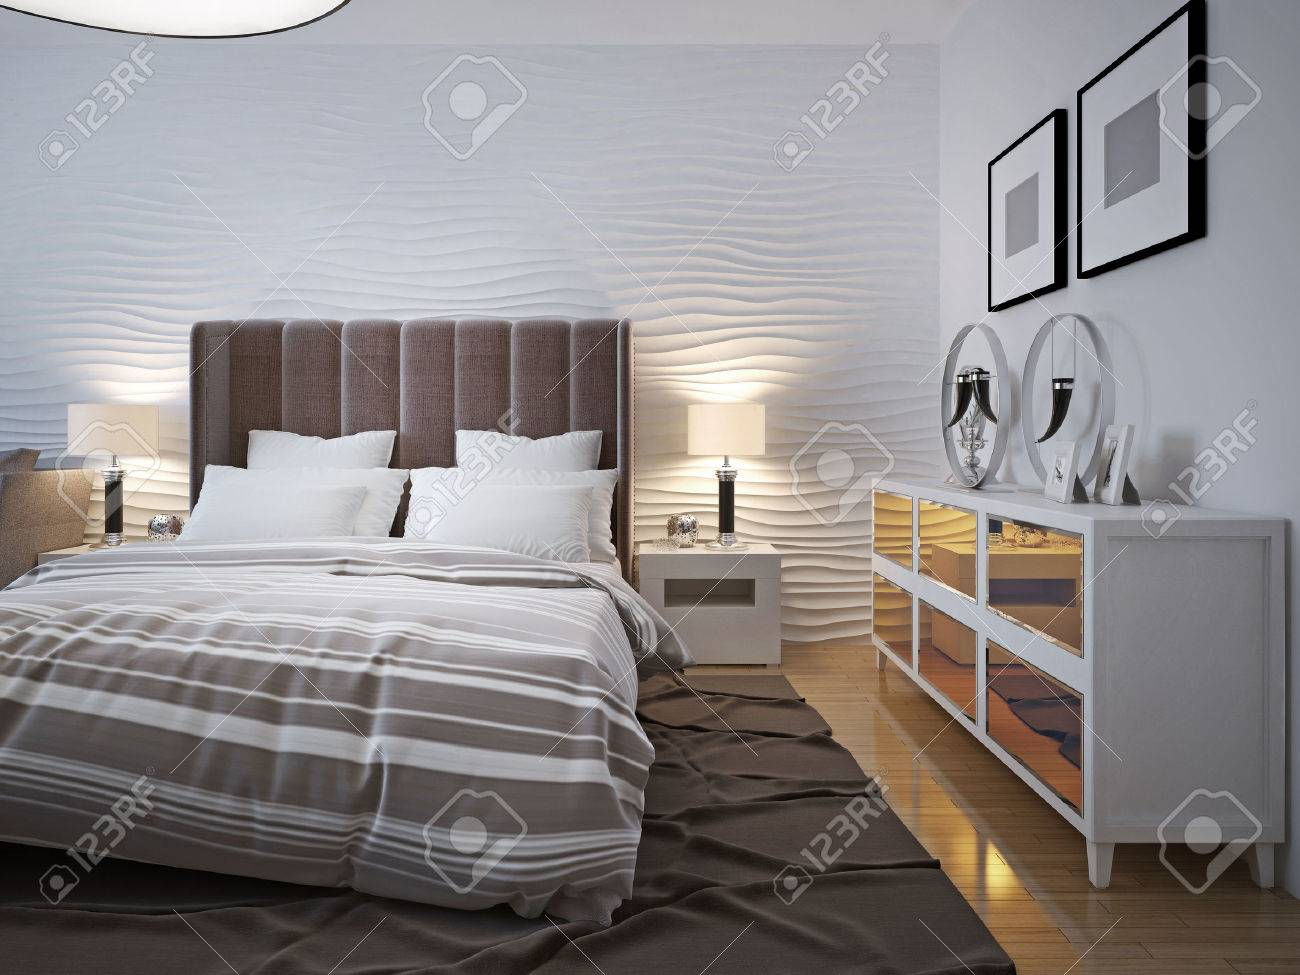 Modern Bedroom With Sideboard Trend 3d Render Stock Photo Picture And Royalty Free Image Image 46196905